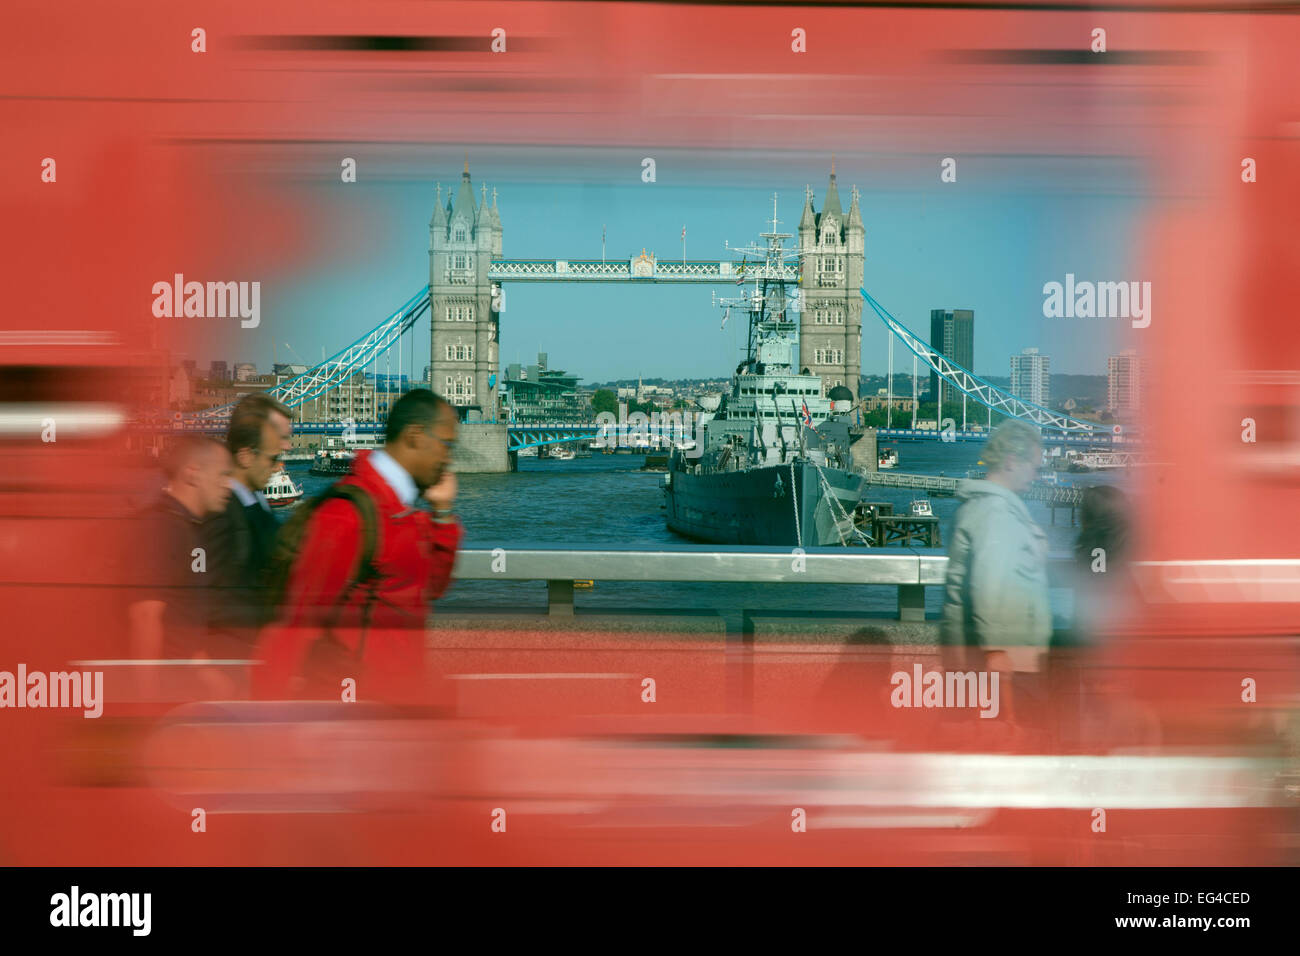 Abstract photo Tower Bridge blurred motion red bus London June 2013. Digitally manipulated. - Stock Image